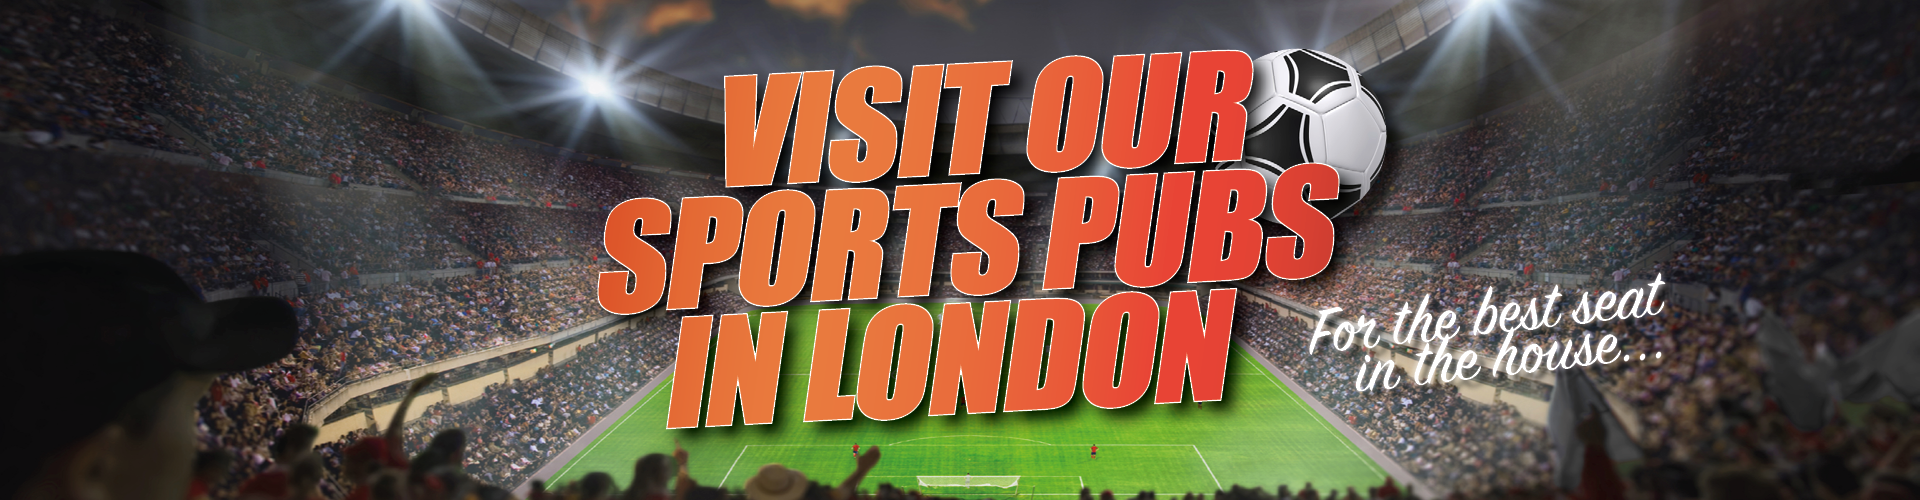 Best sports pubs in London Craft Union